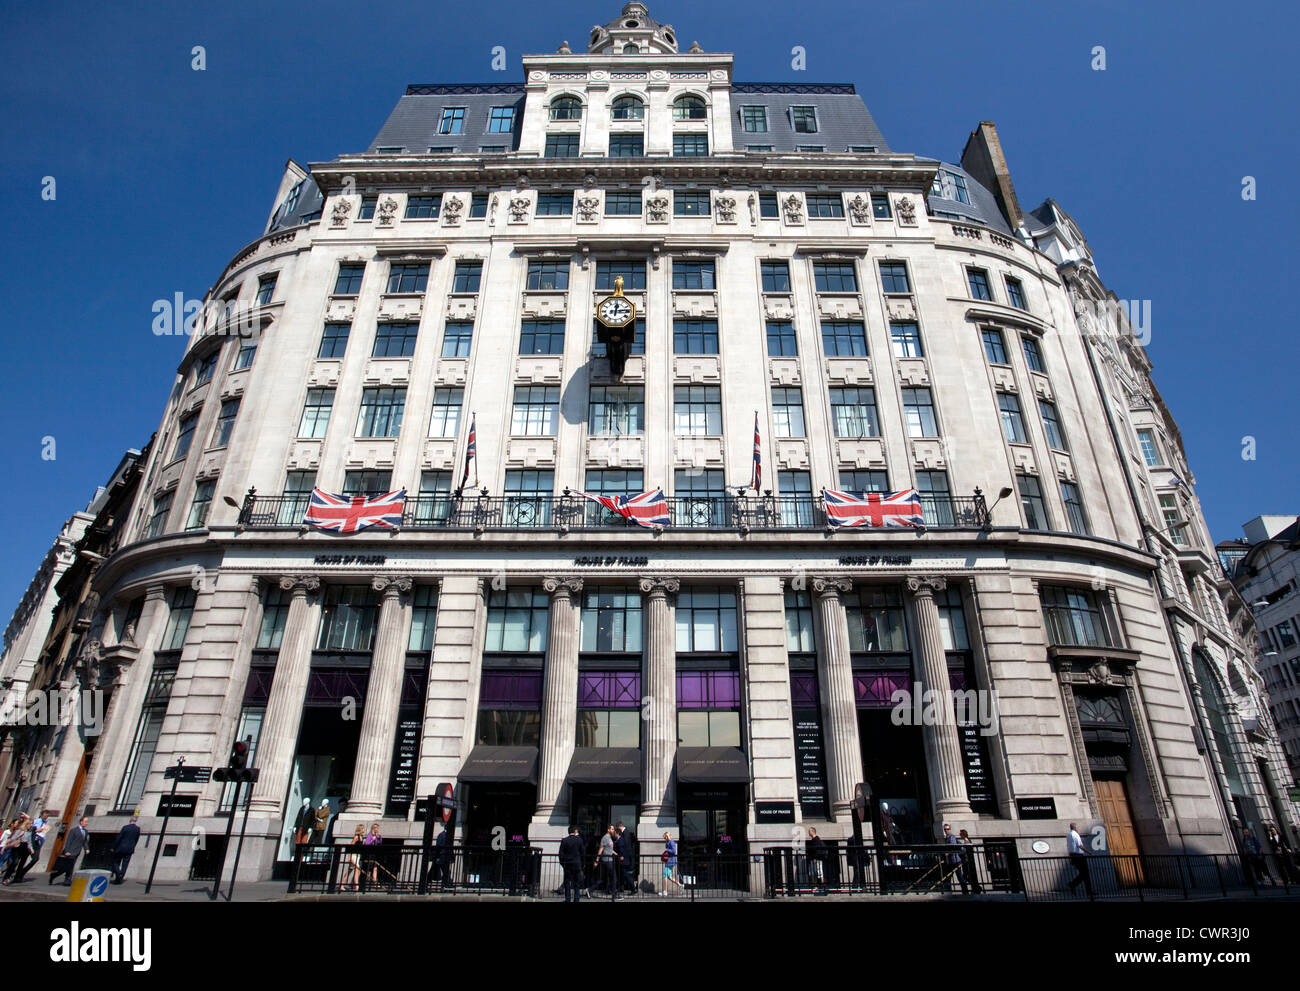 House of Fraser department store in City of London - Stock Image